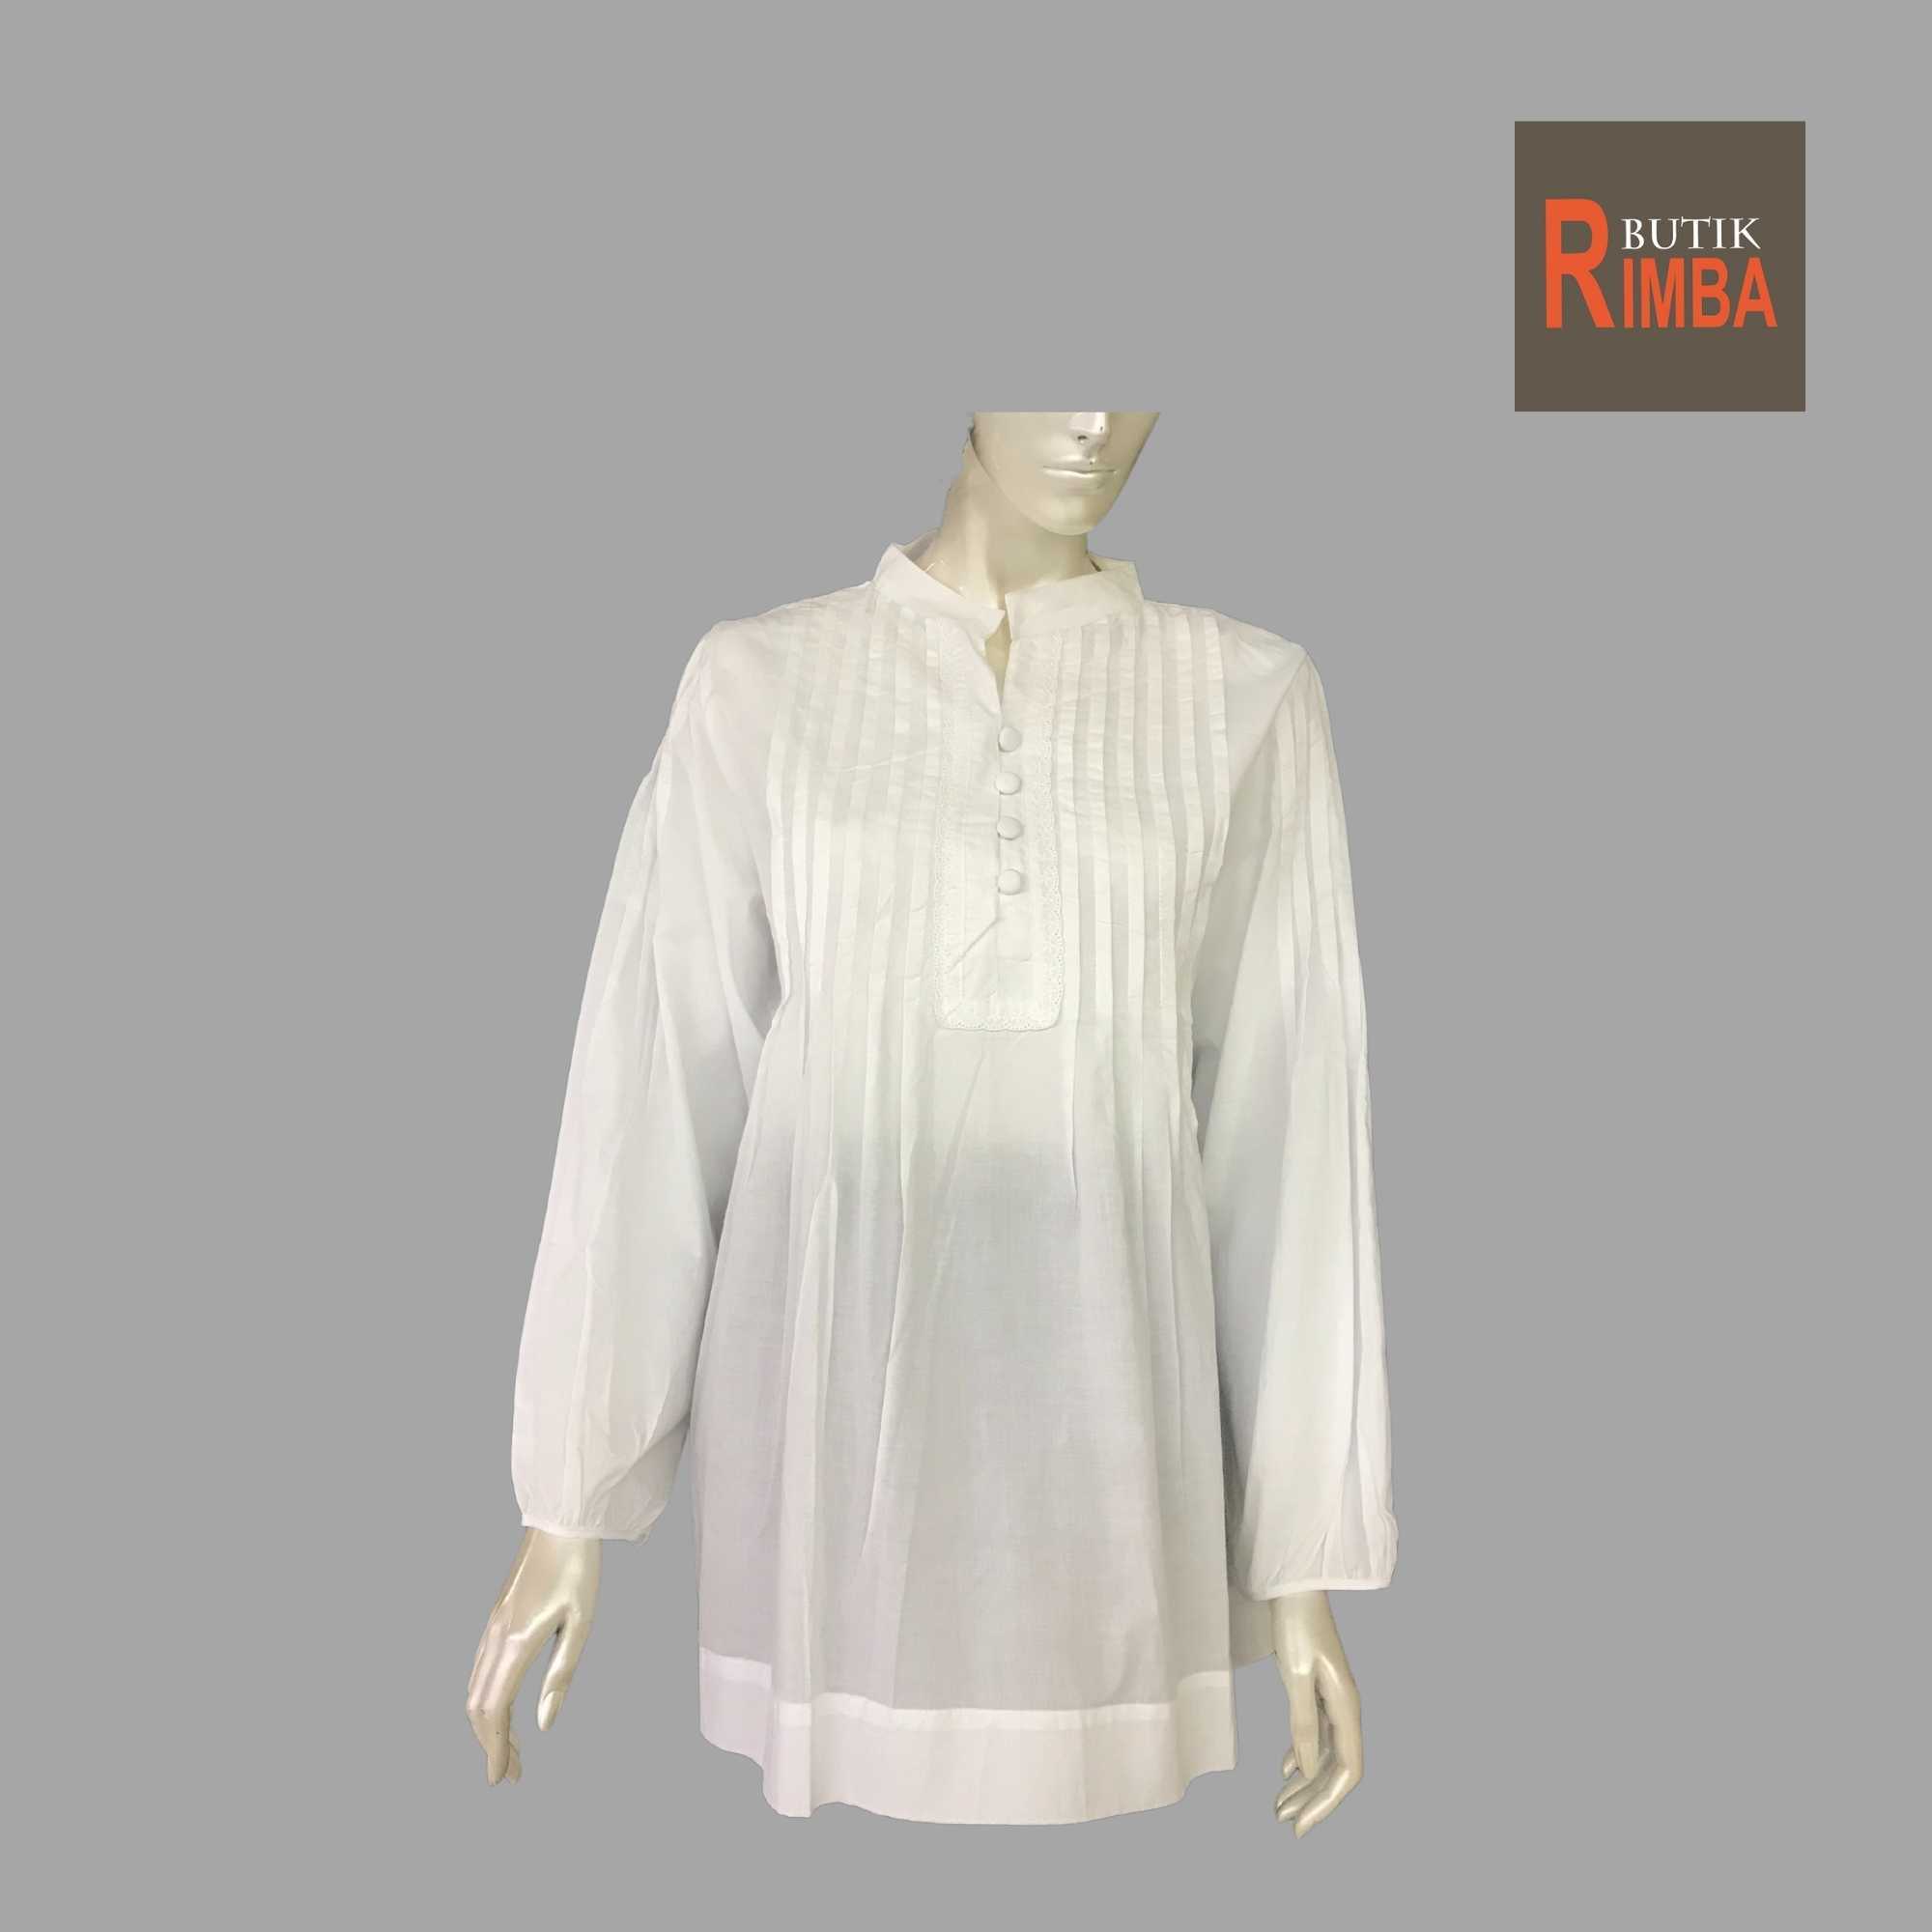 WOMEN CASUAL AND COMFORTABLE WHITE BLOUSE COTTON FREE SIZE PATTERN 18